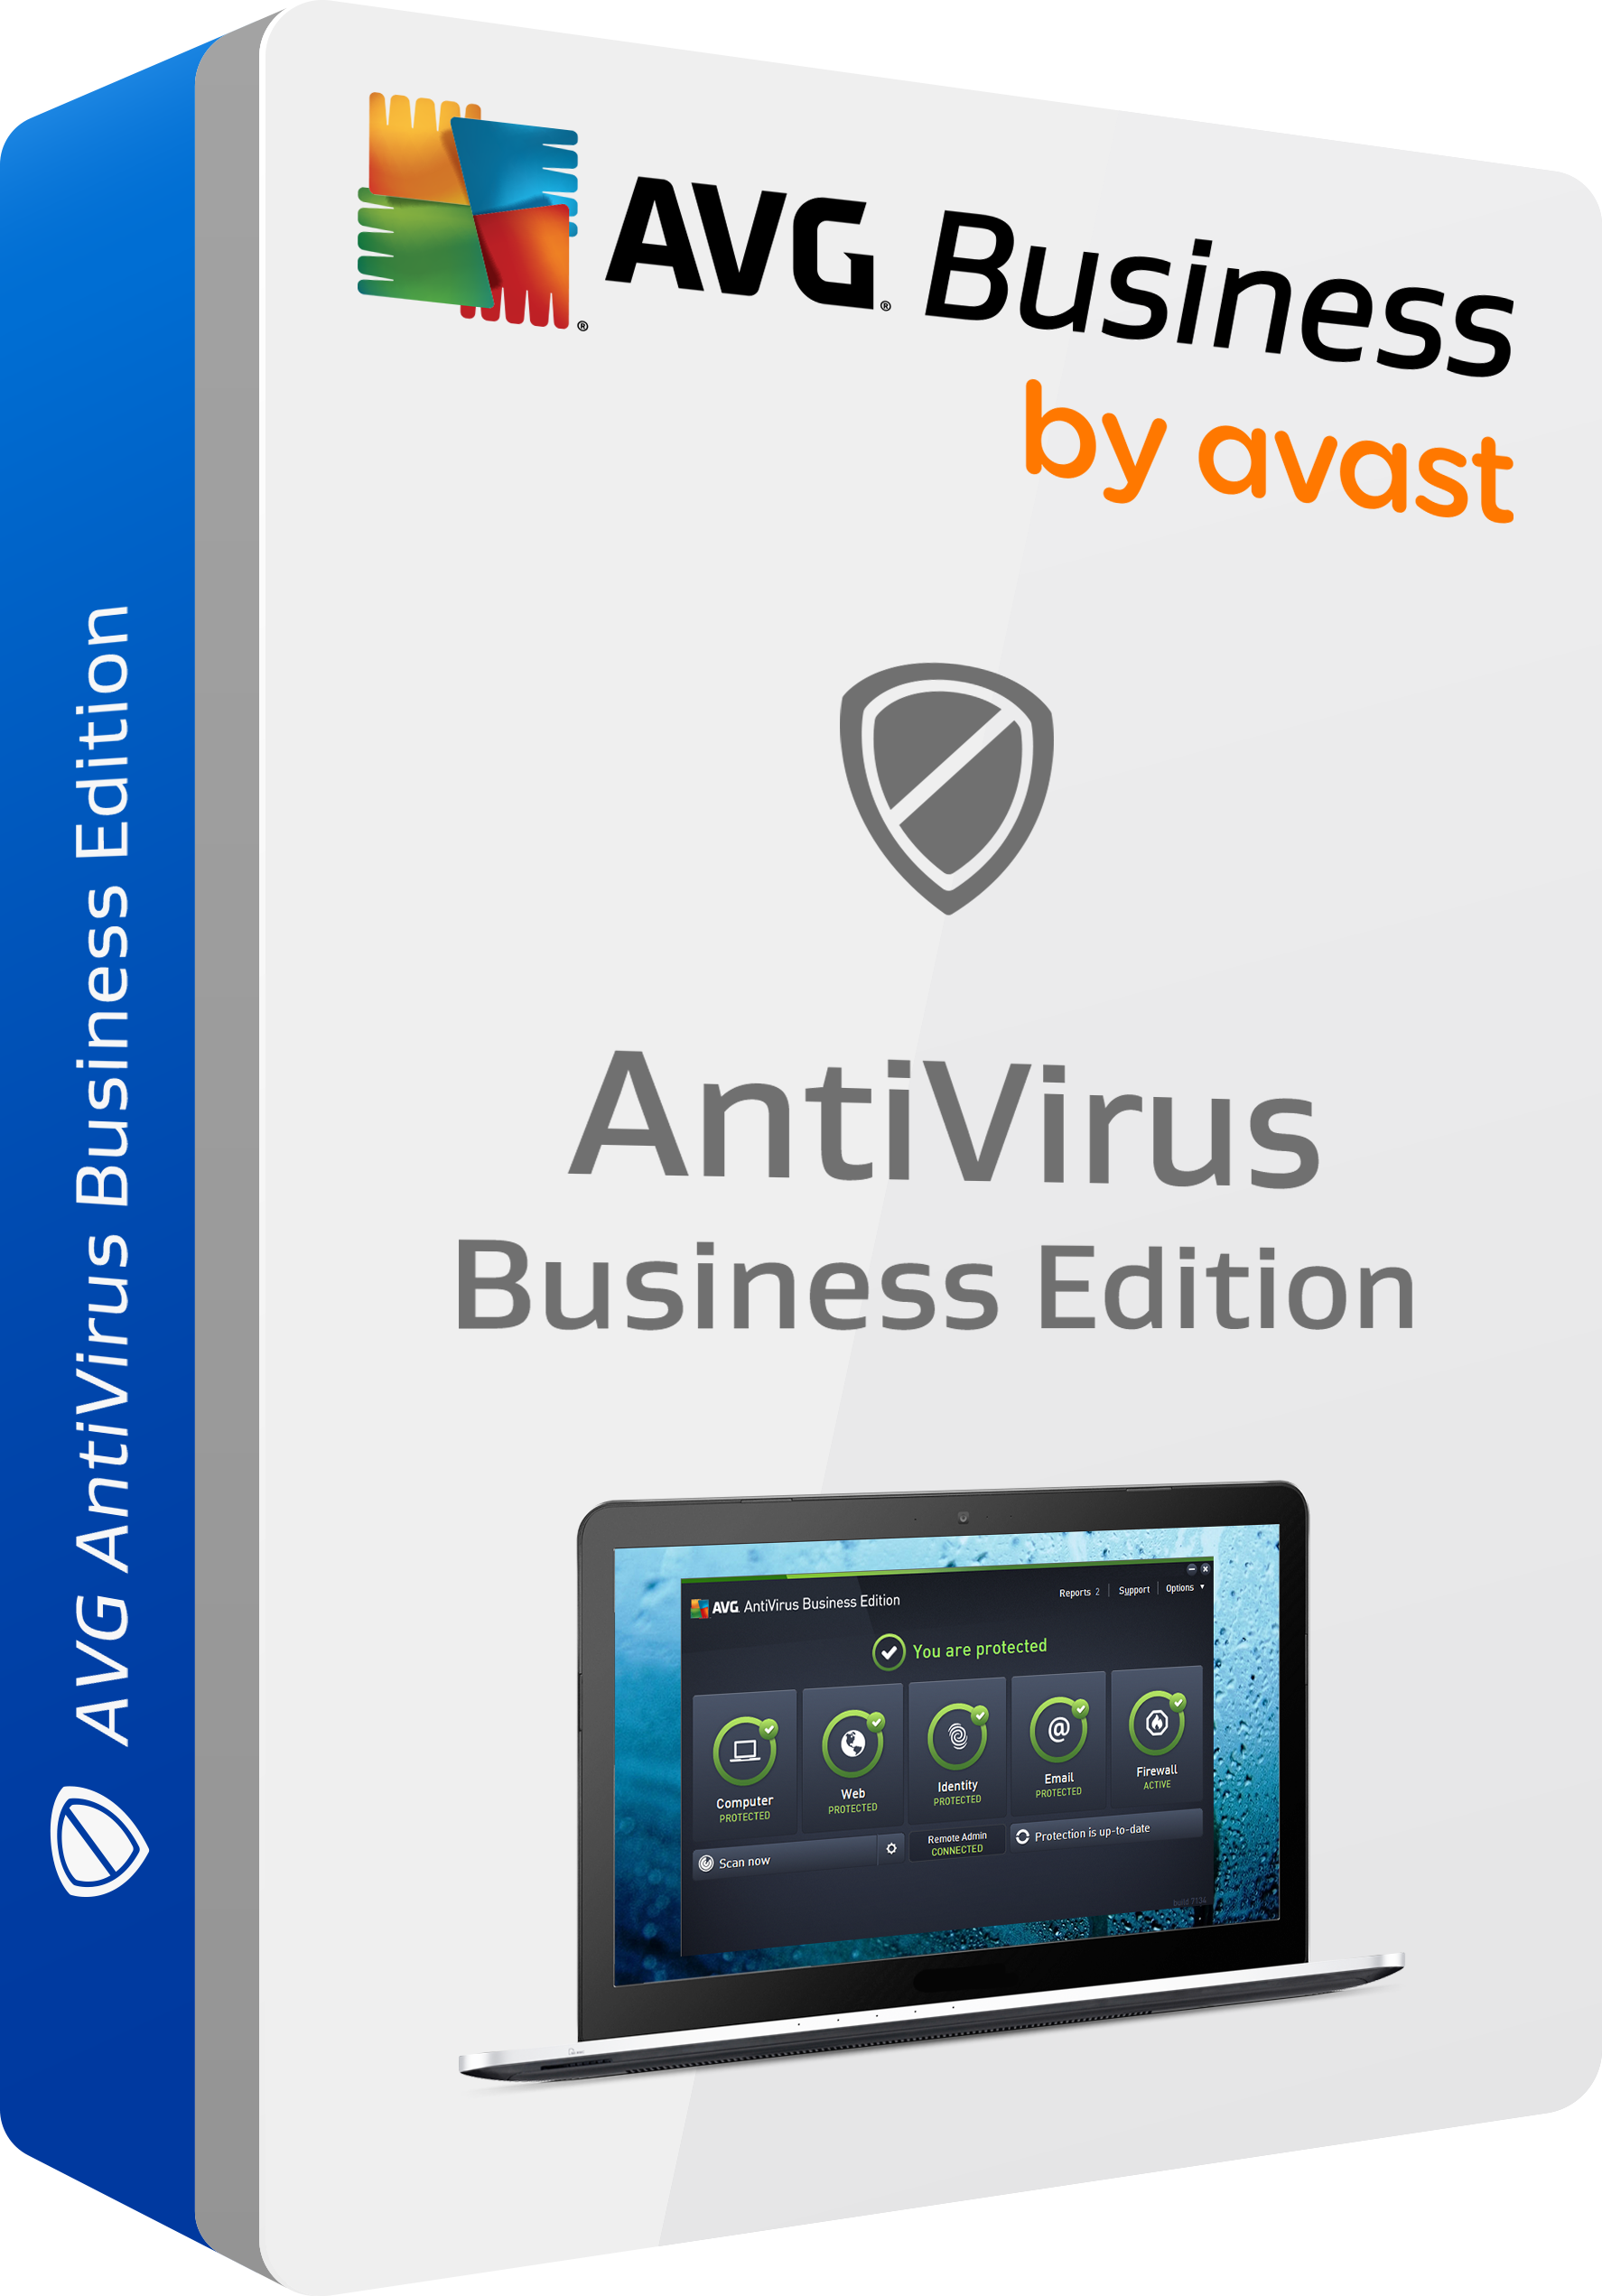 AVG Antivirus Business Edition, 3 Years License